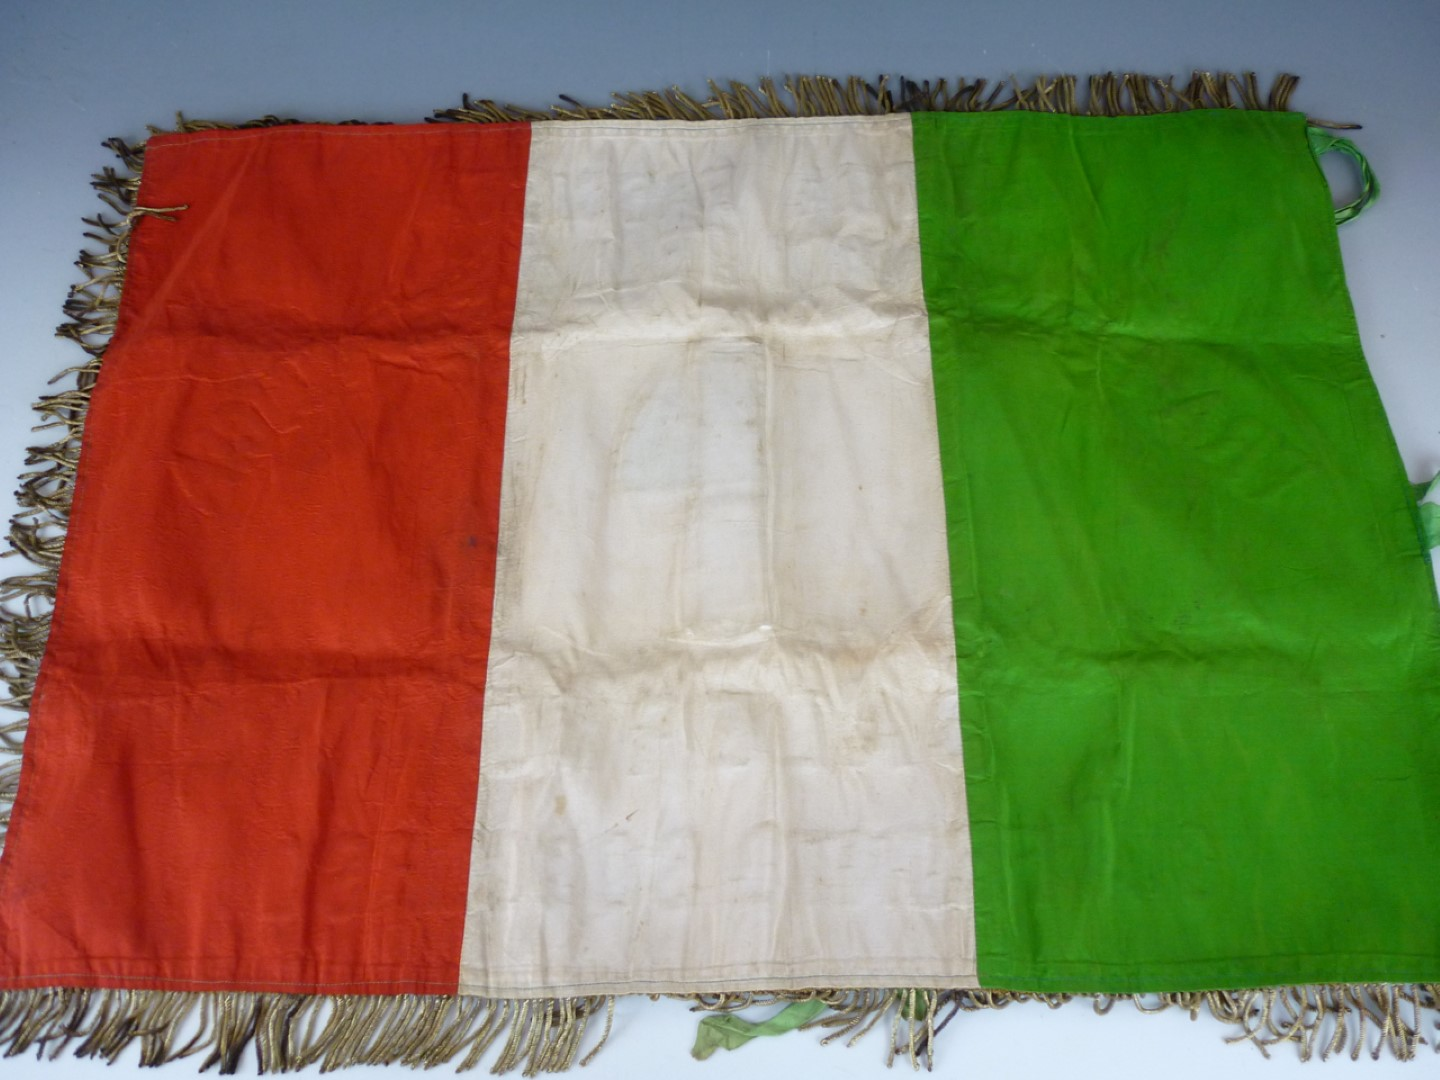 Lot 71 - A Second World War Fascist Italian Veteran's banner, being the state flag with bullion-embroidered